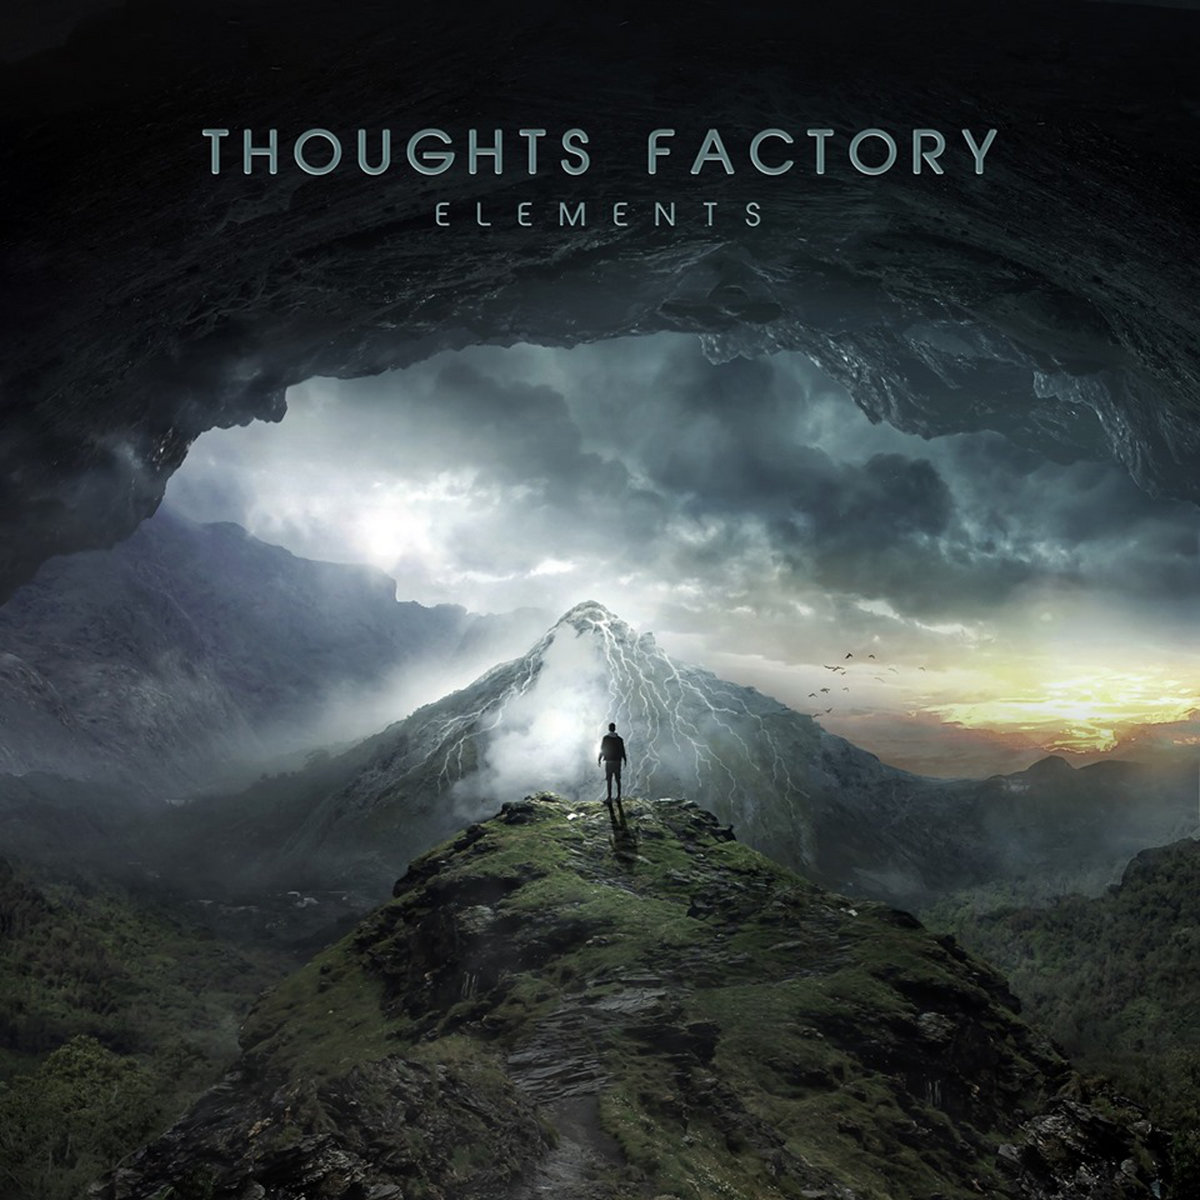 Thoughts Factory: Elements